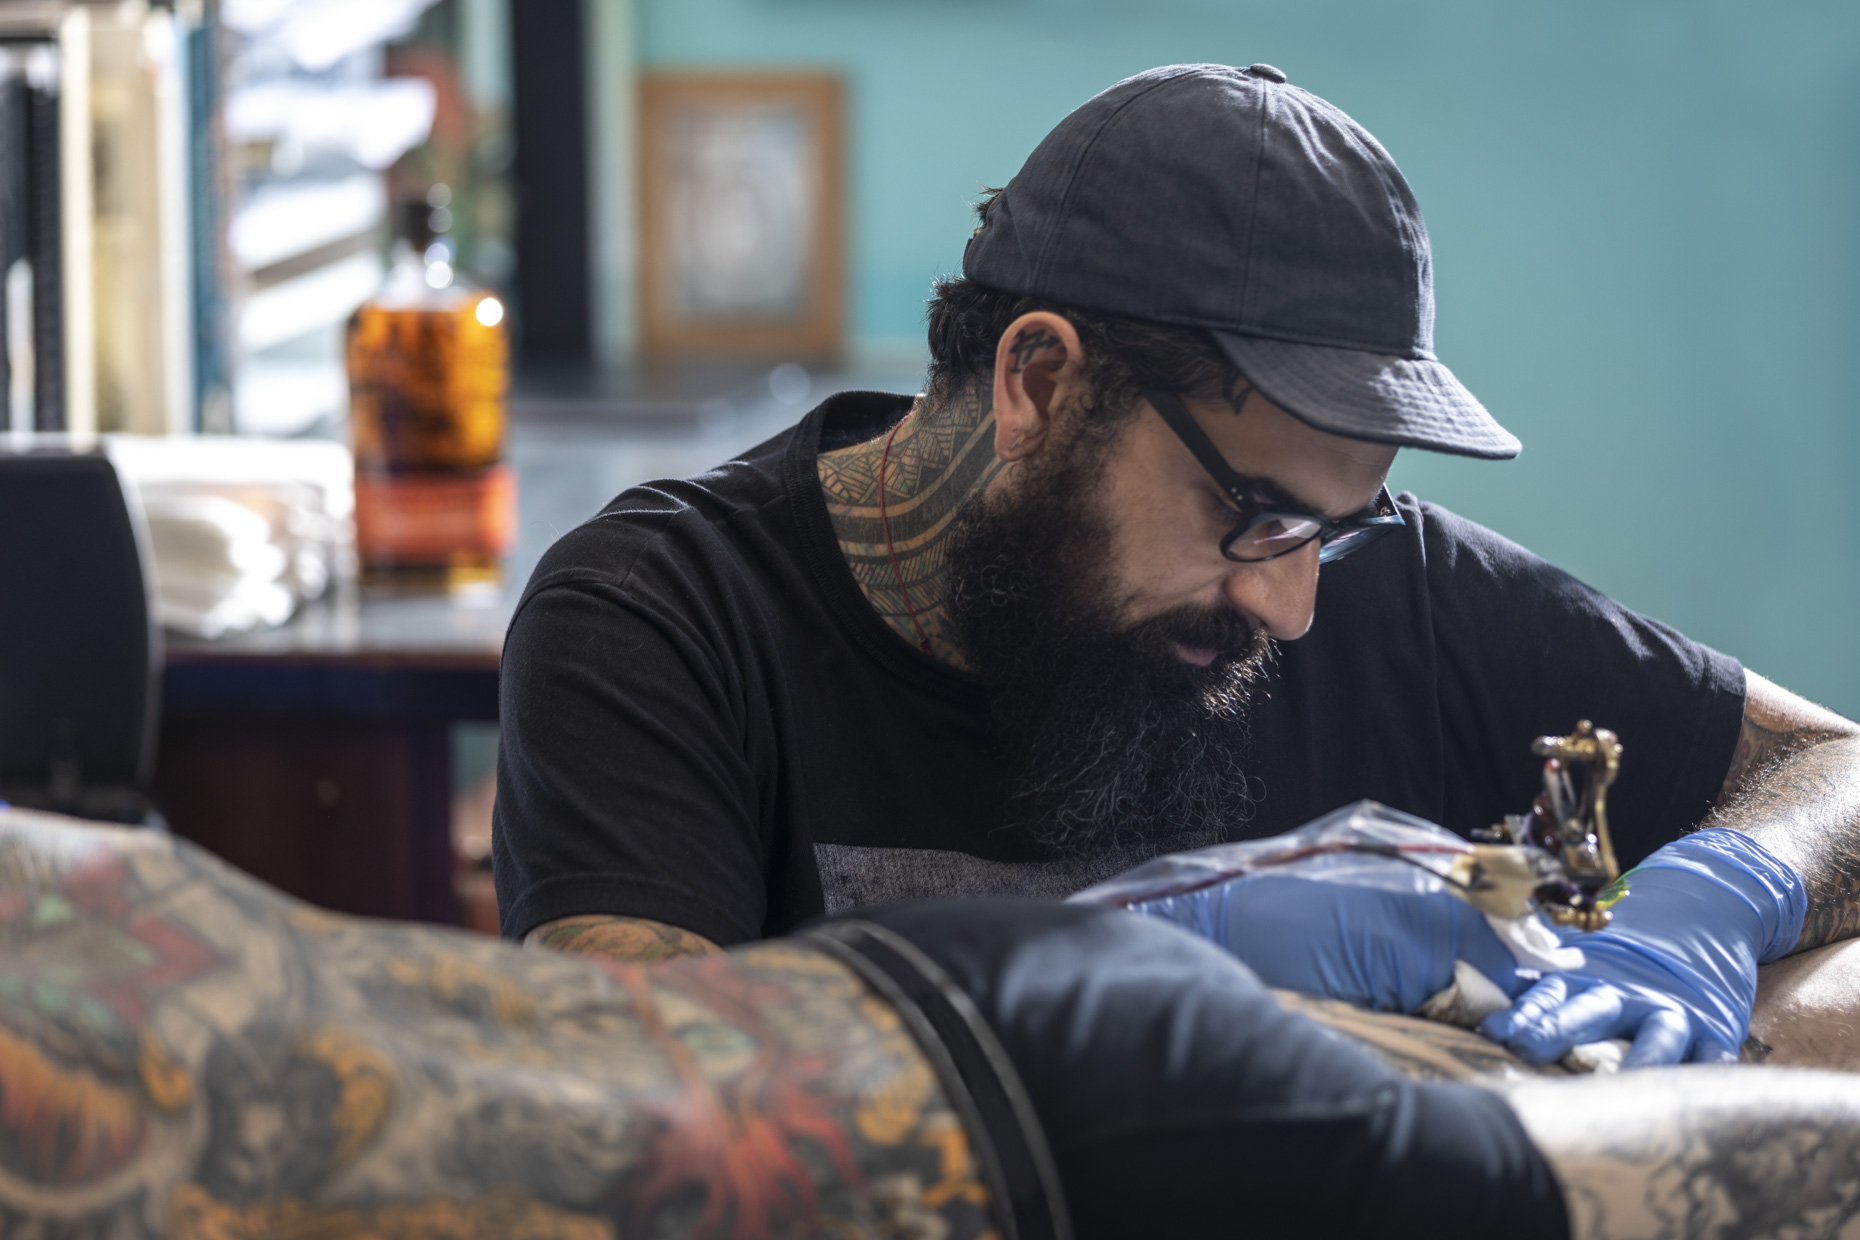 08_15_18_Bulleit_Tattoo_Austin-814